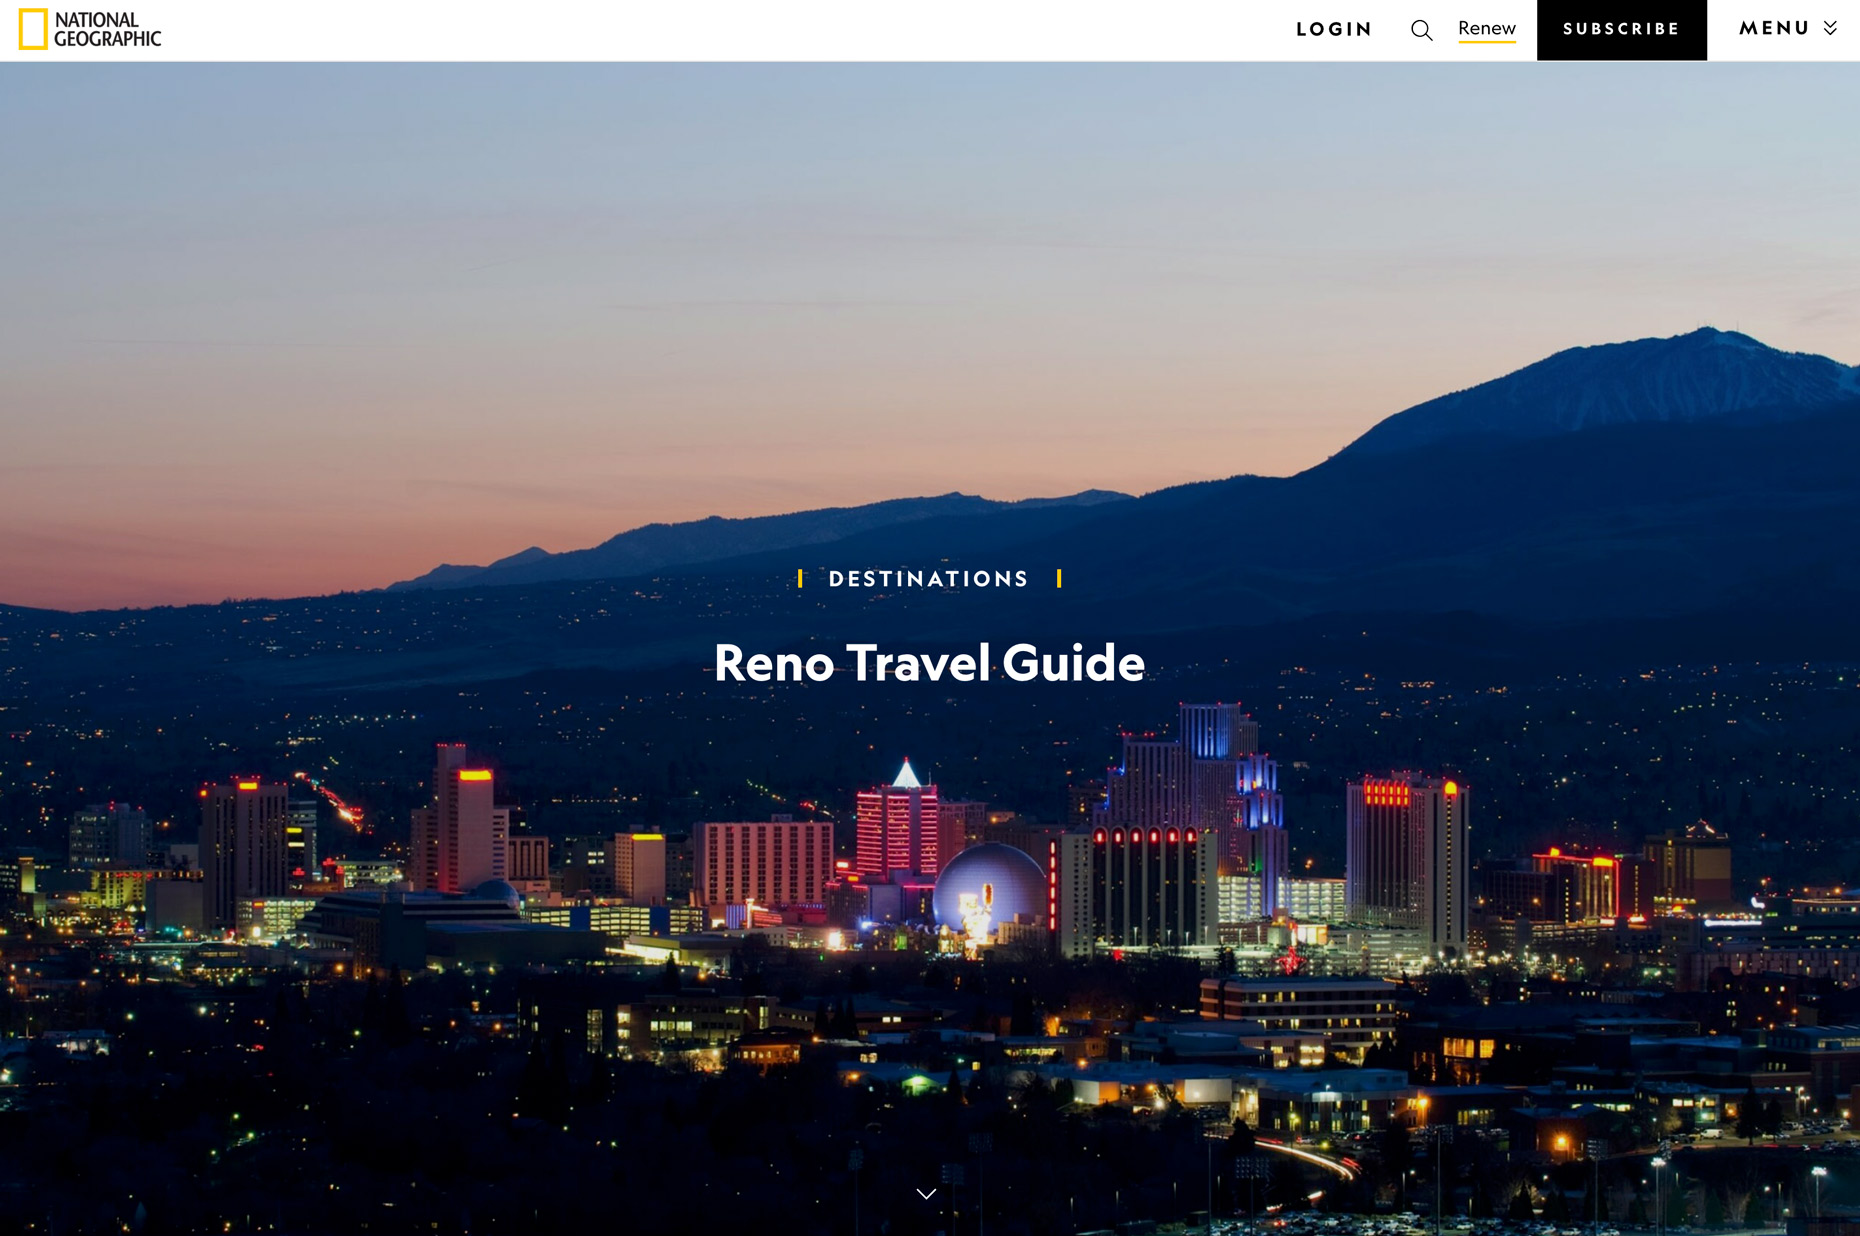 National Geographic - Destination Guide - Reno, NV